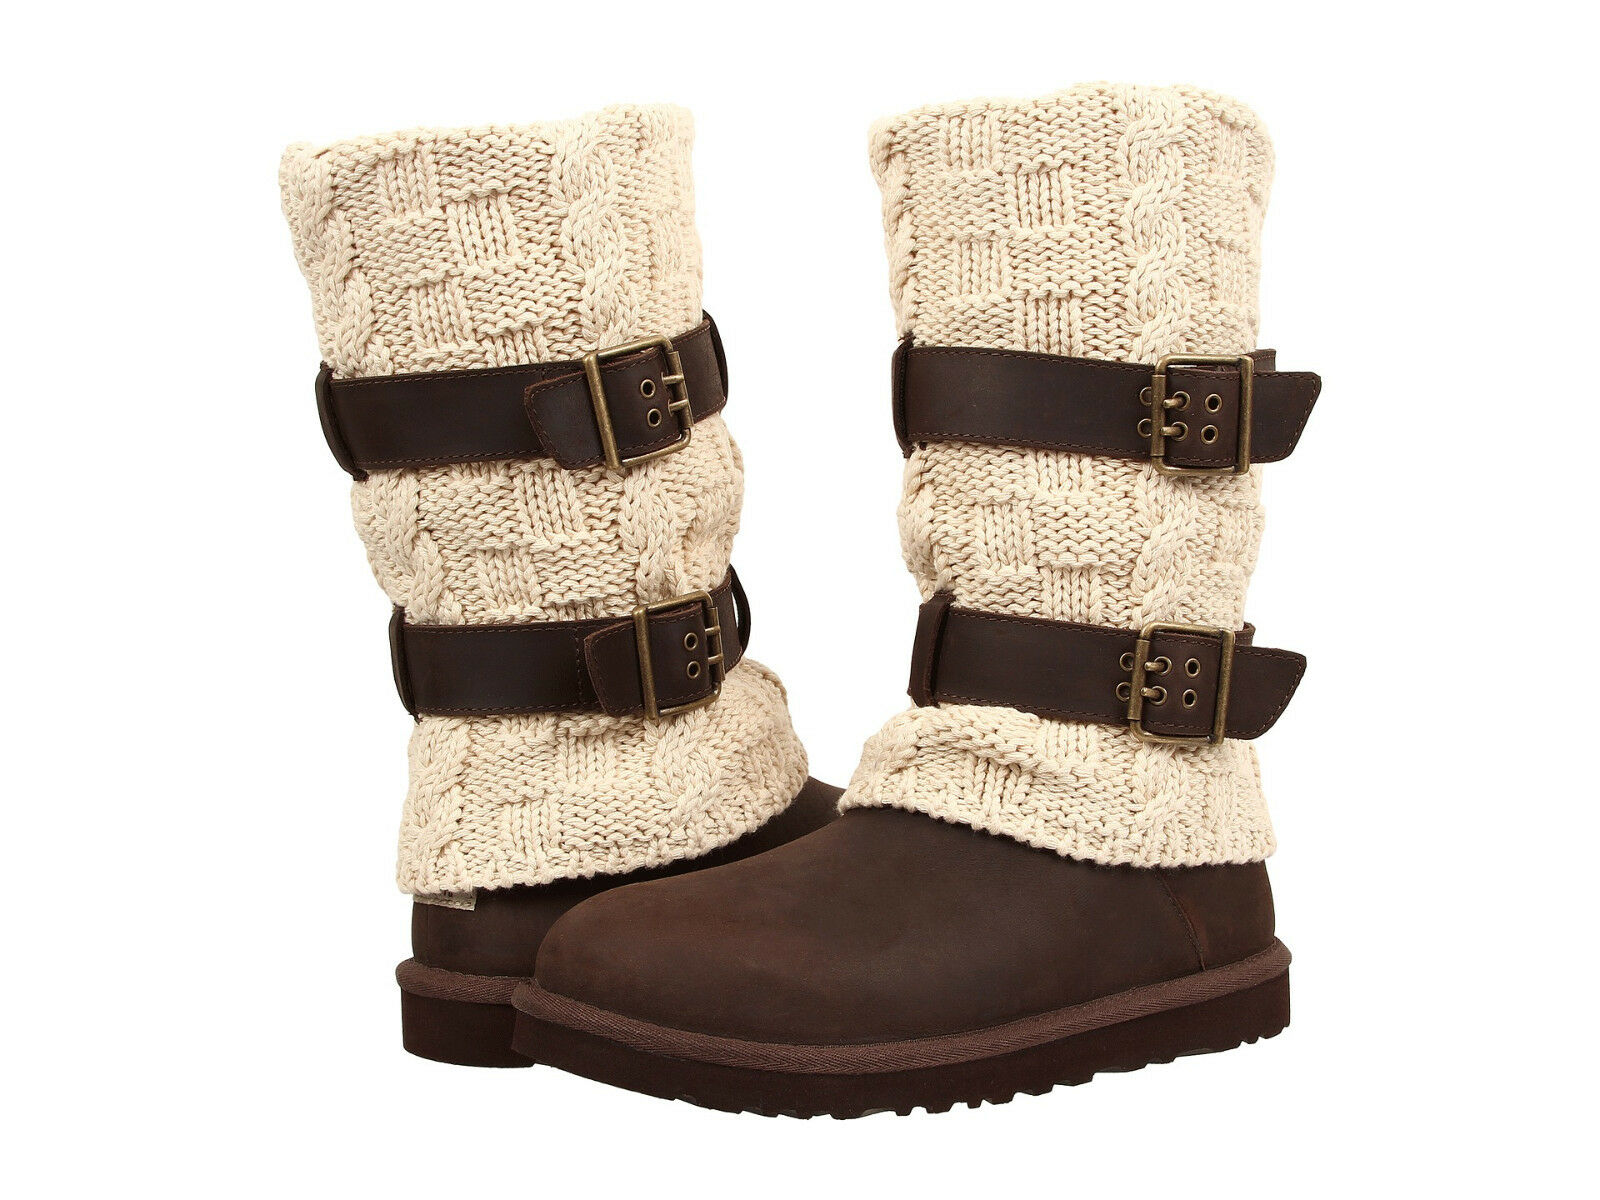 Women UGG Australia Cassidee Tall 1007691 Chocolate Leather 100% Authentic New 1 of 8Only 2 available ...